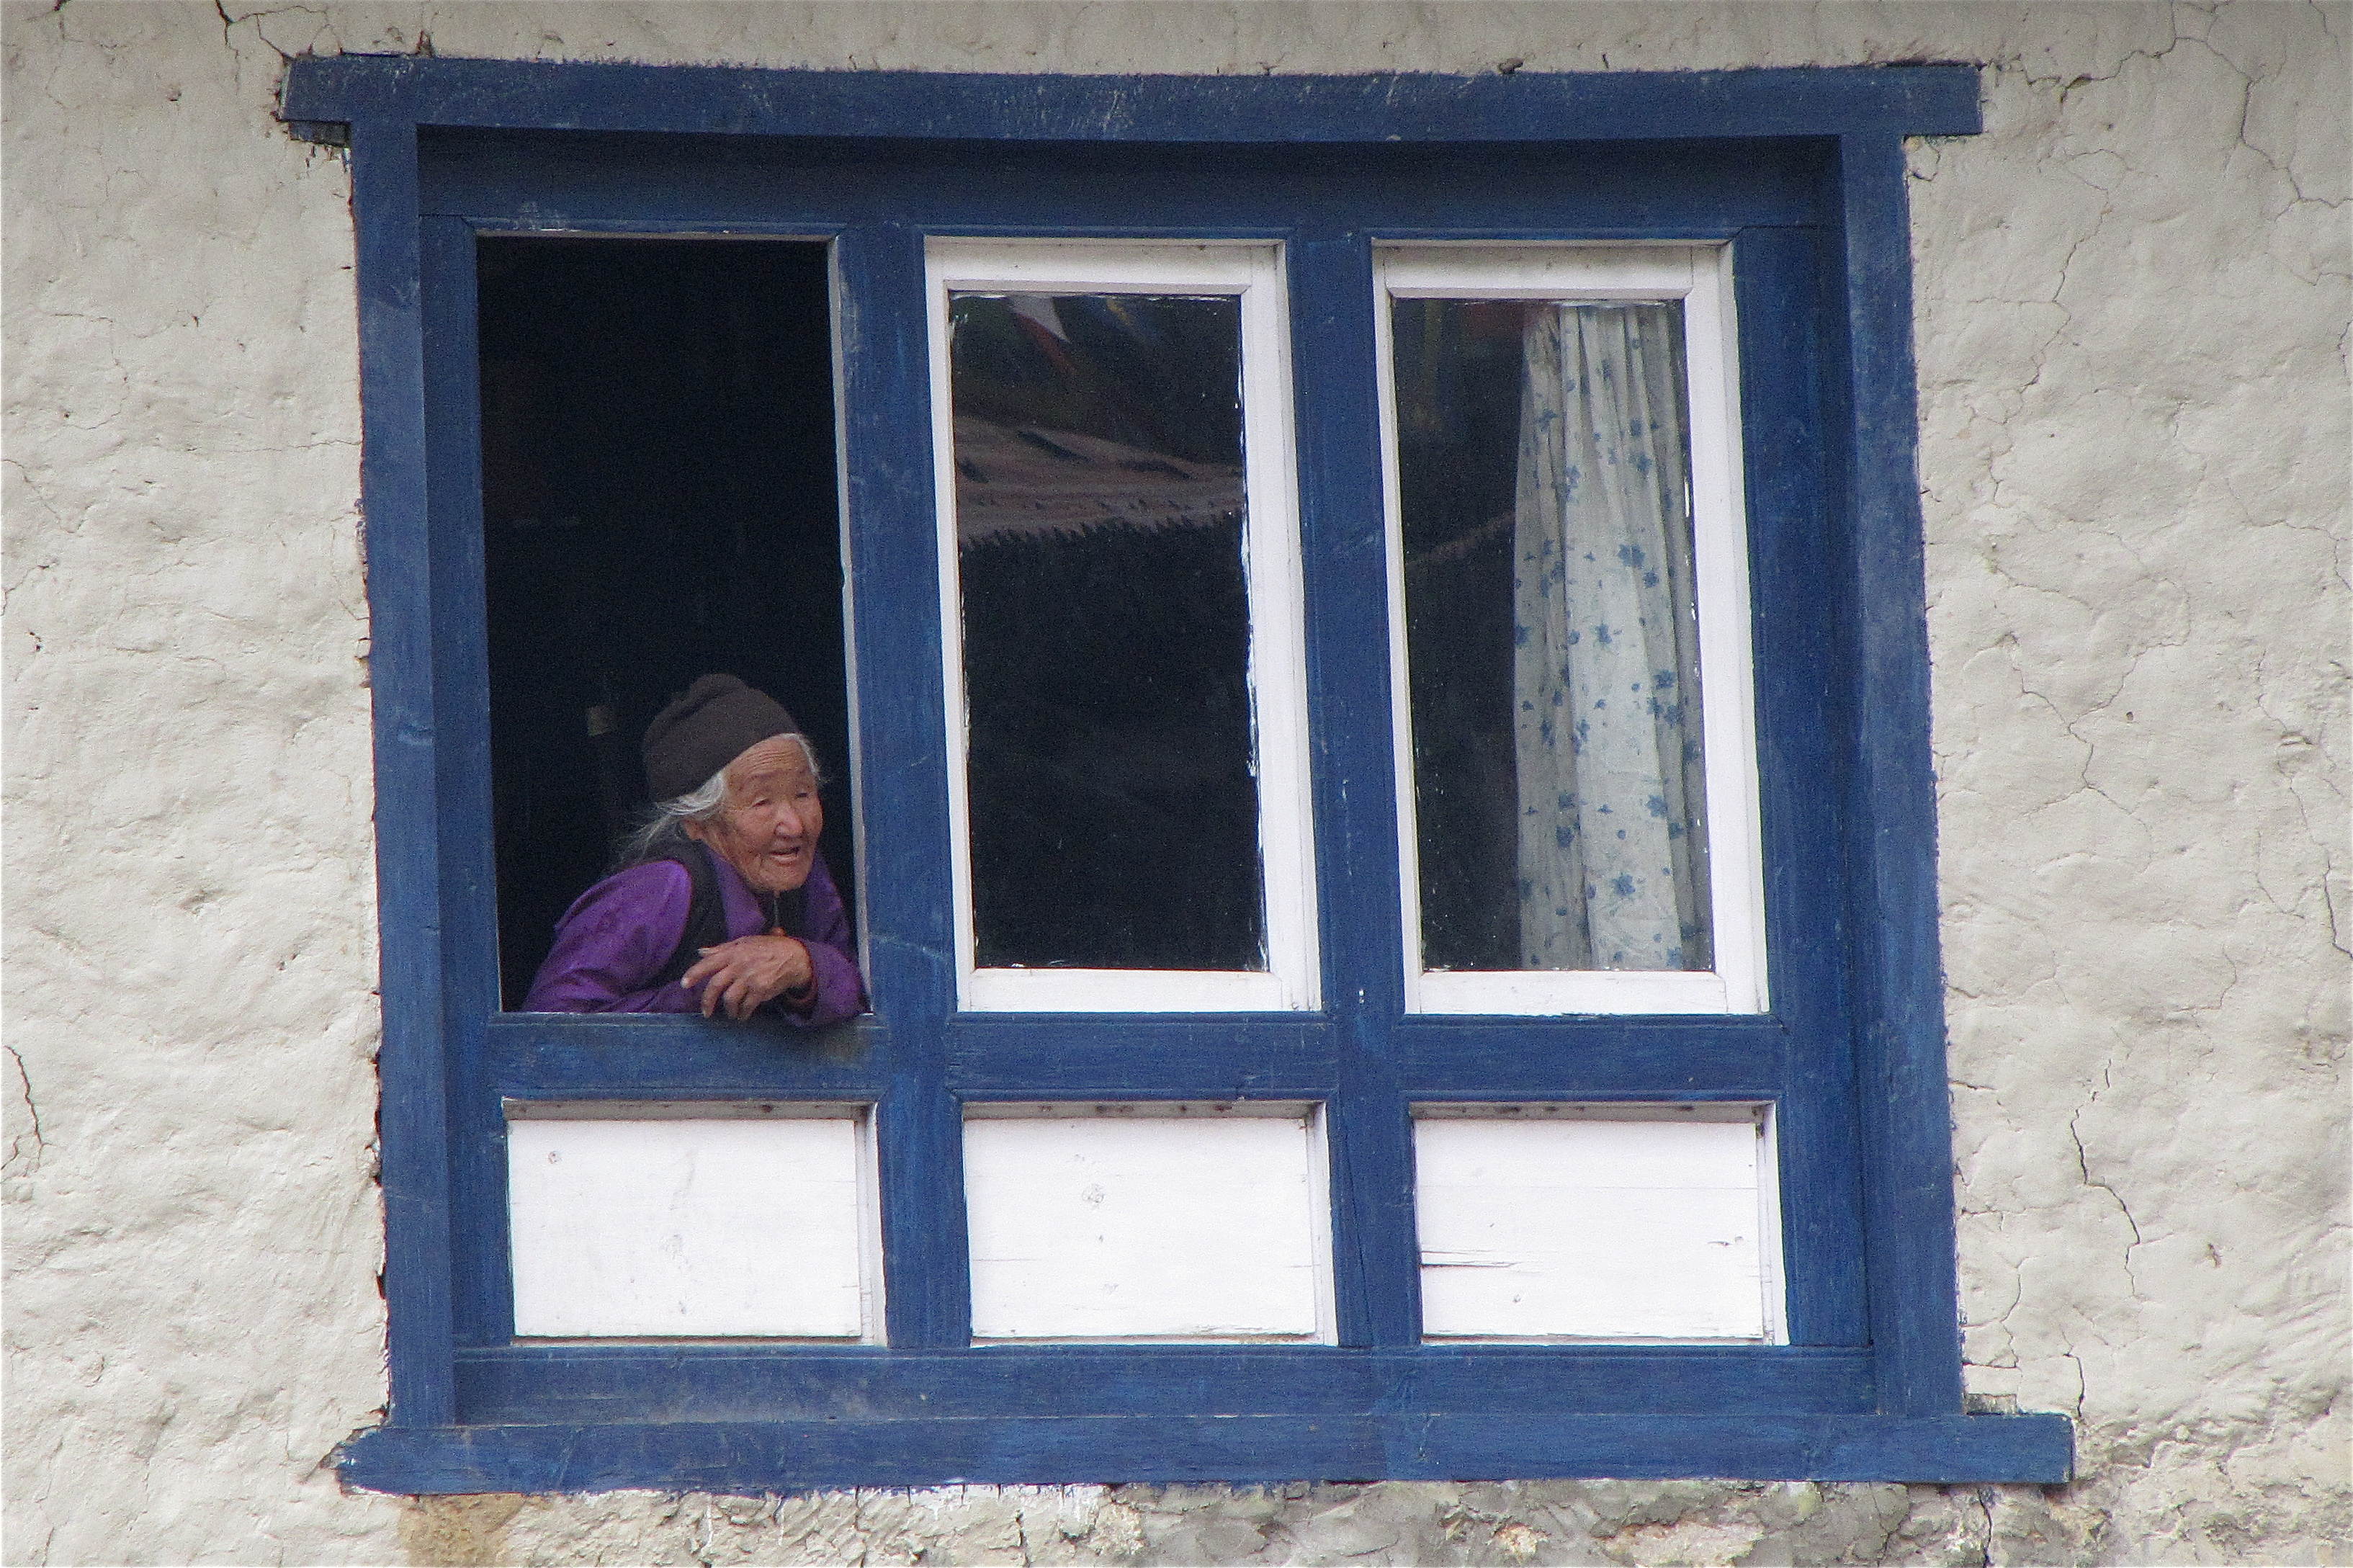 Villager in Namche